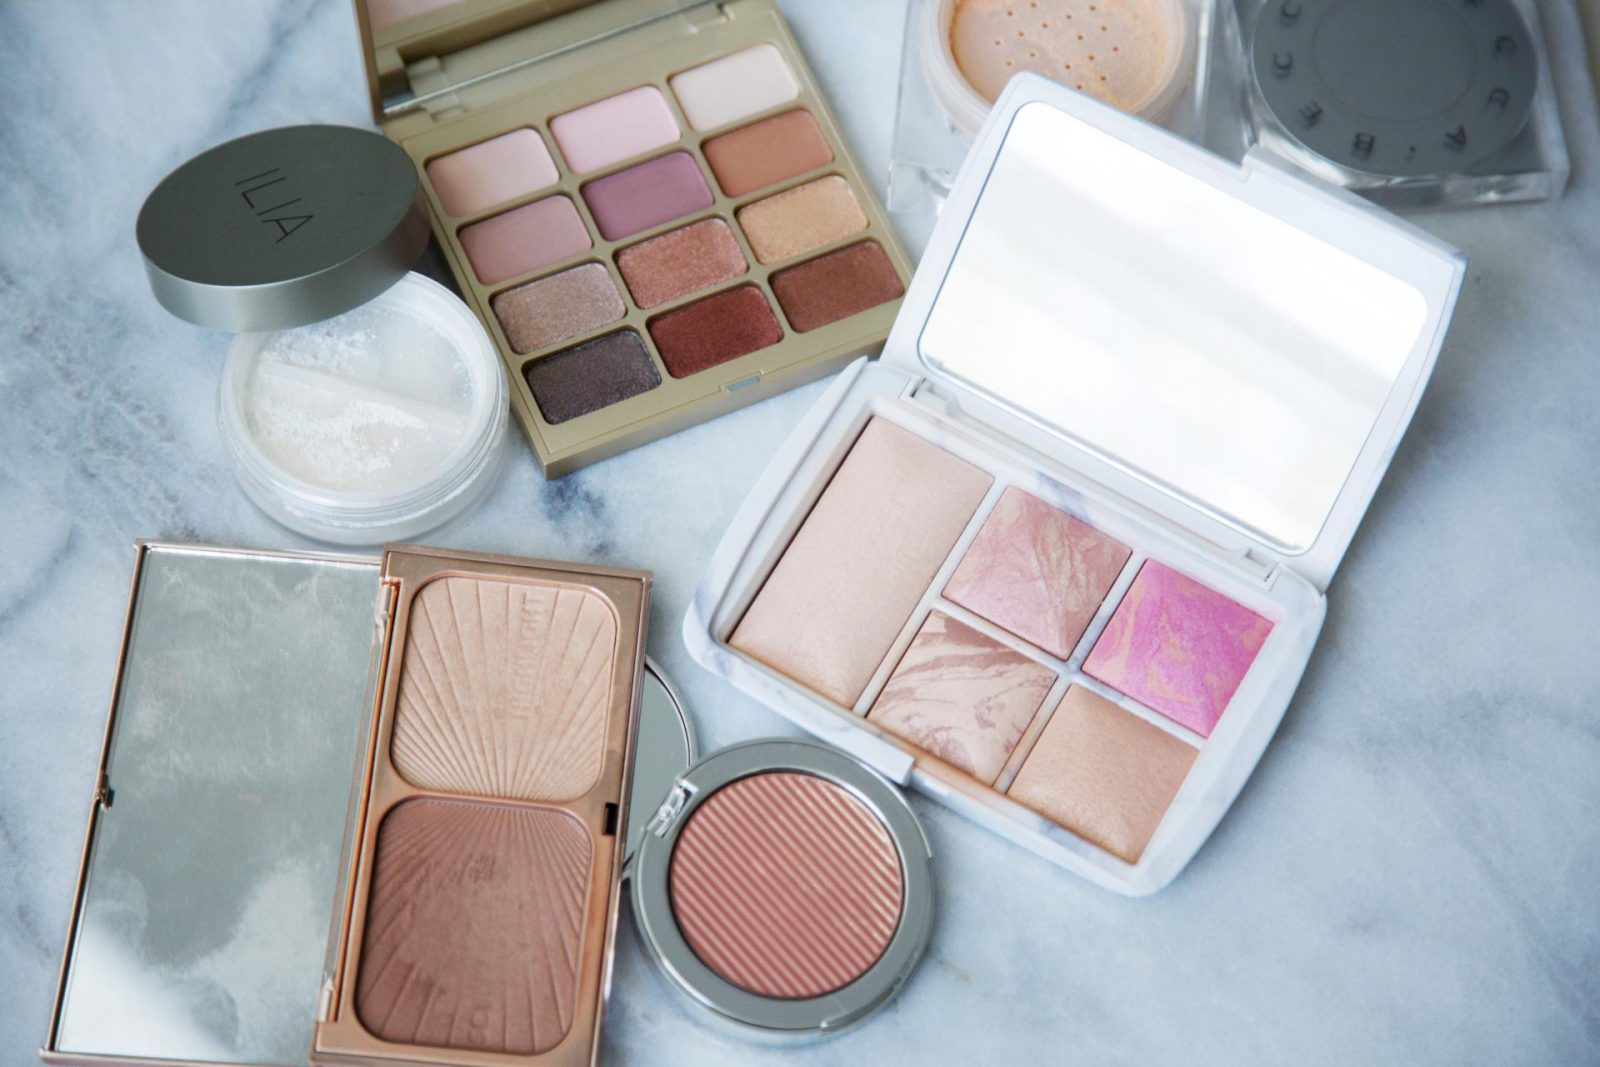 makeup shelf life powders